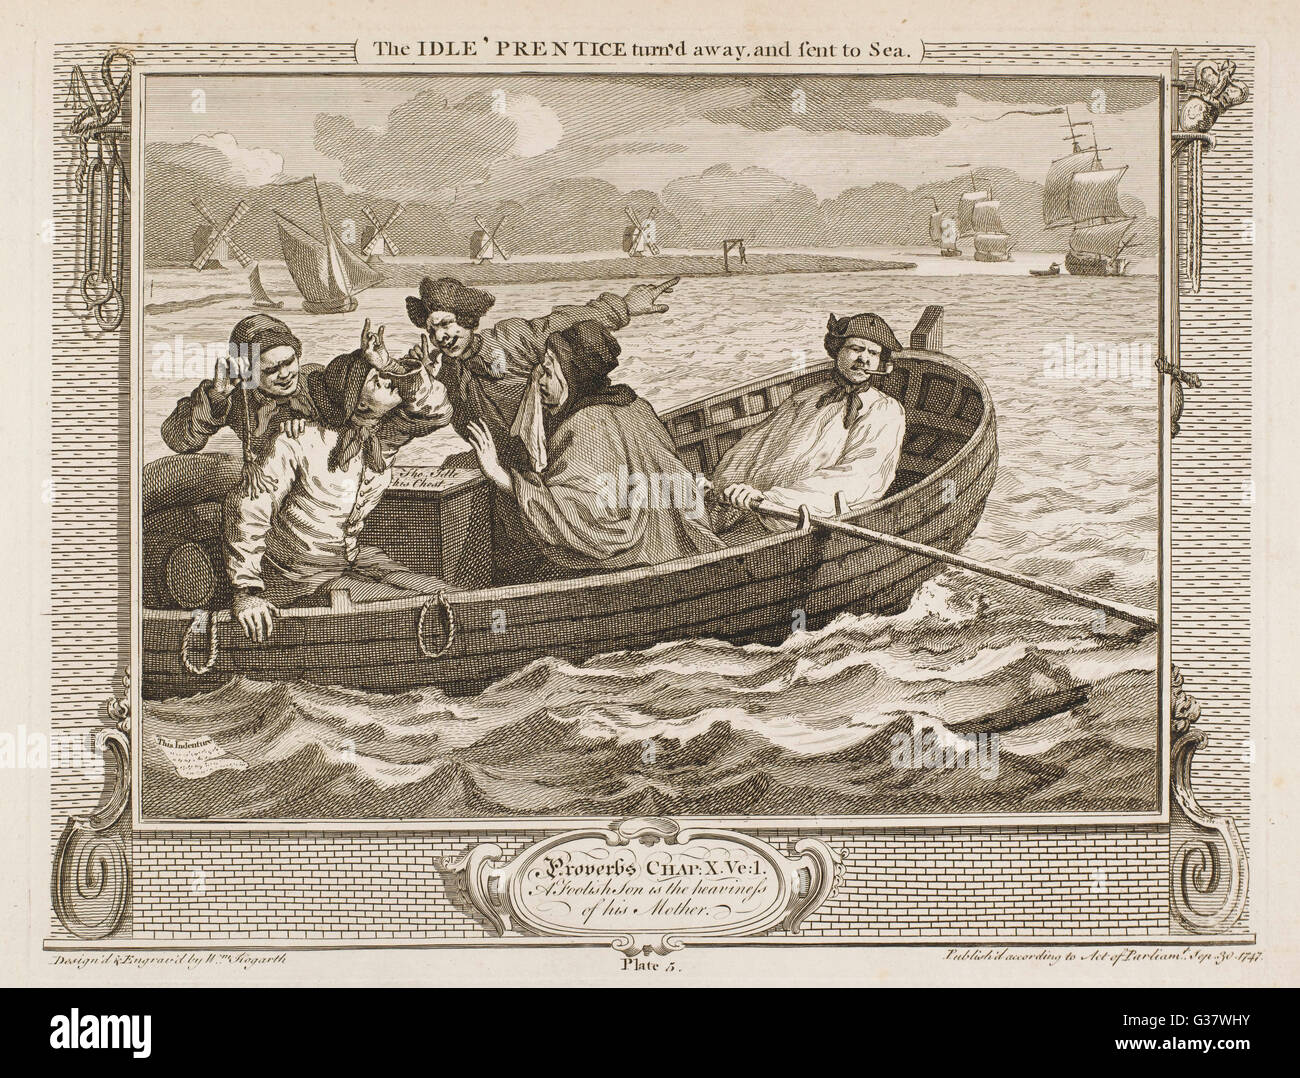 5. The idle 'prentice turn'd away and sent to sea (final destination unknown).     Date: 1747 - Stock Image